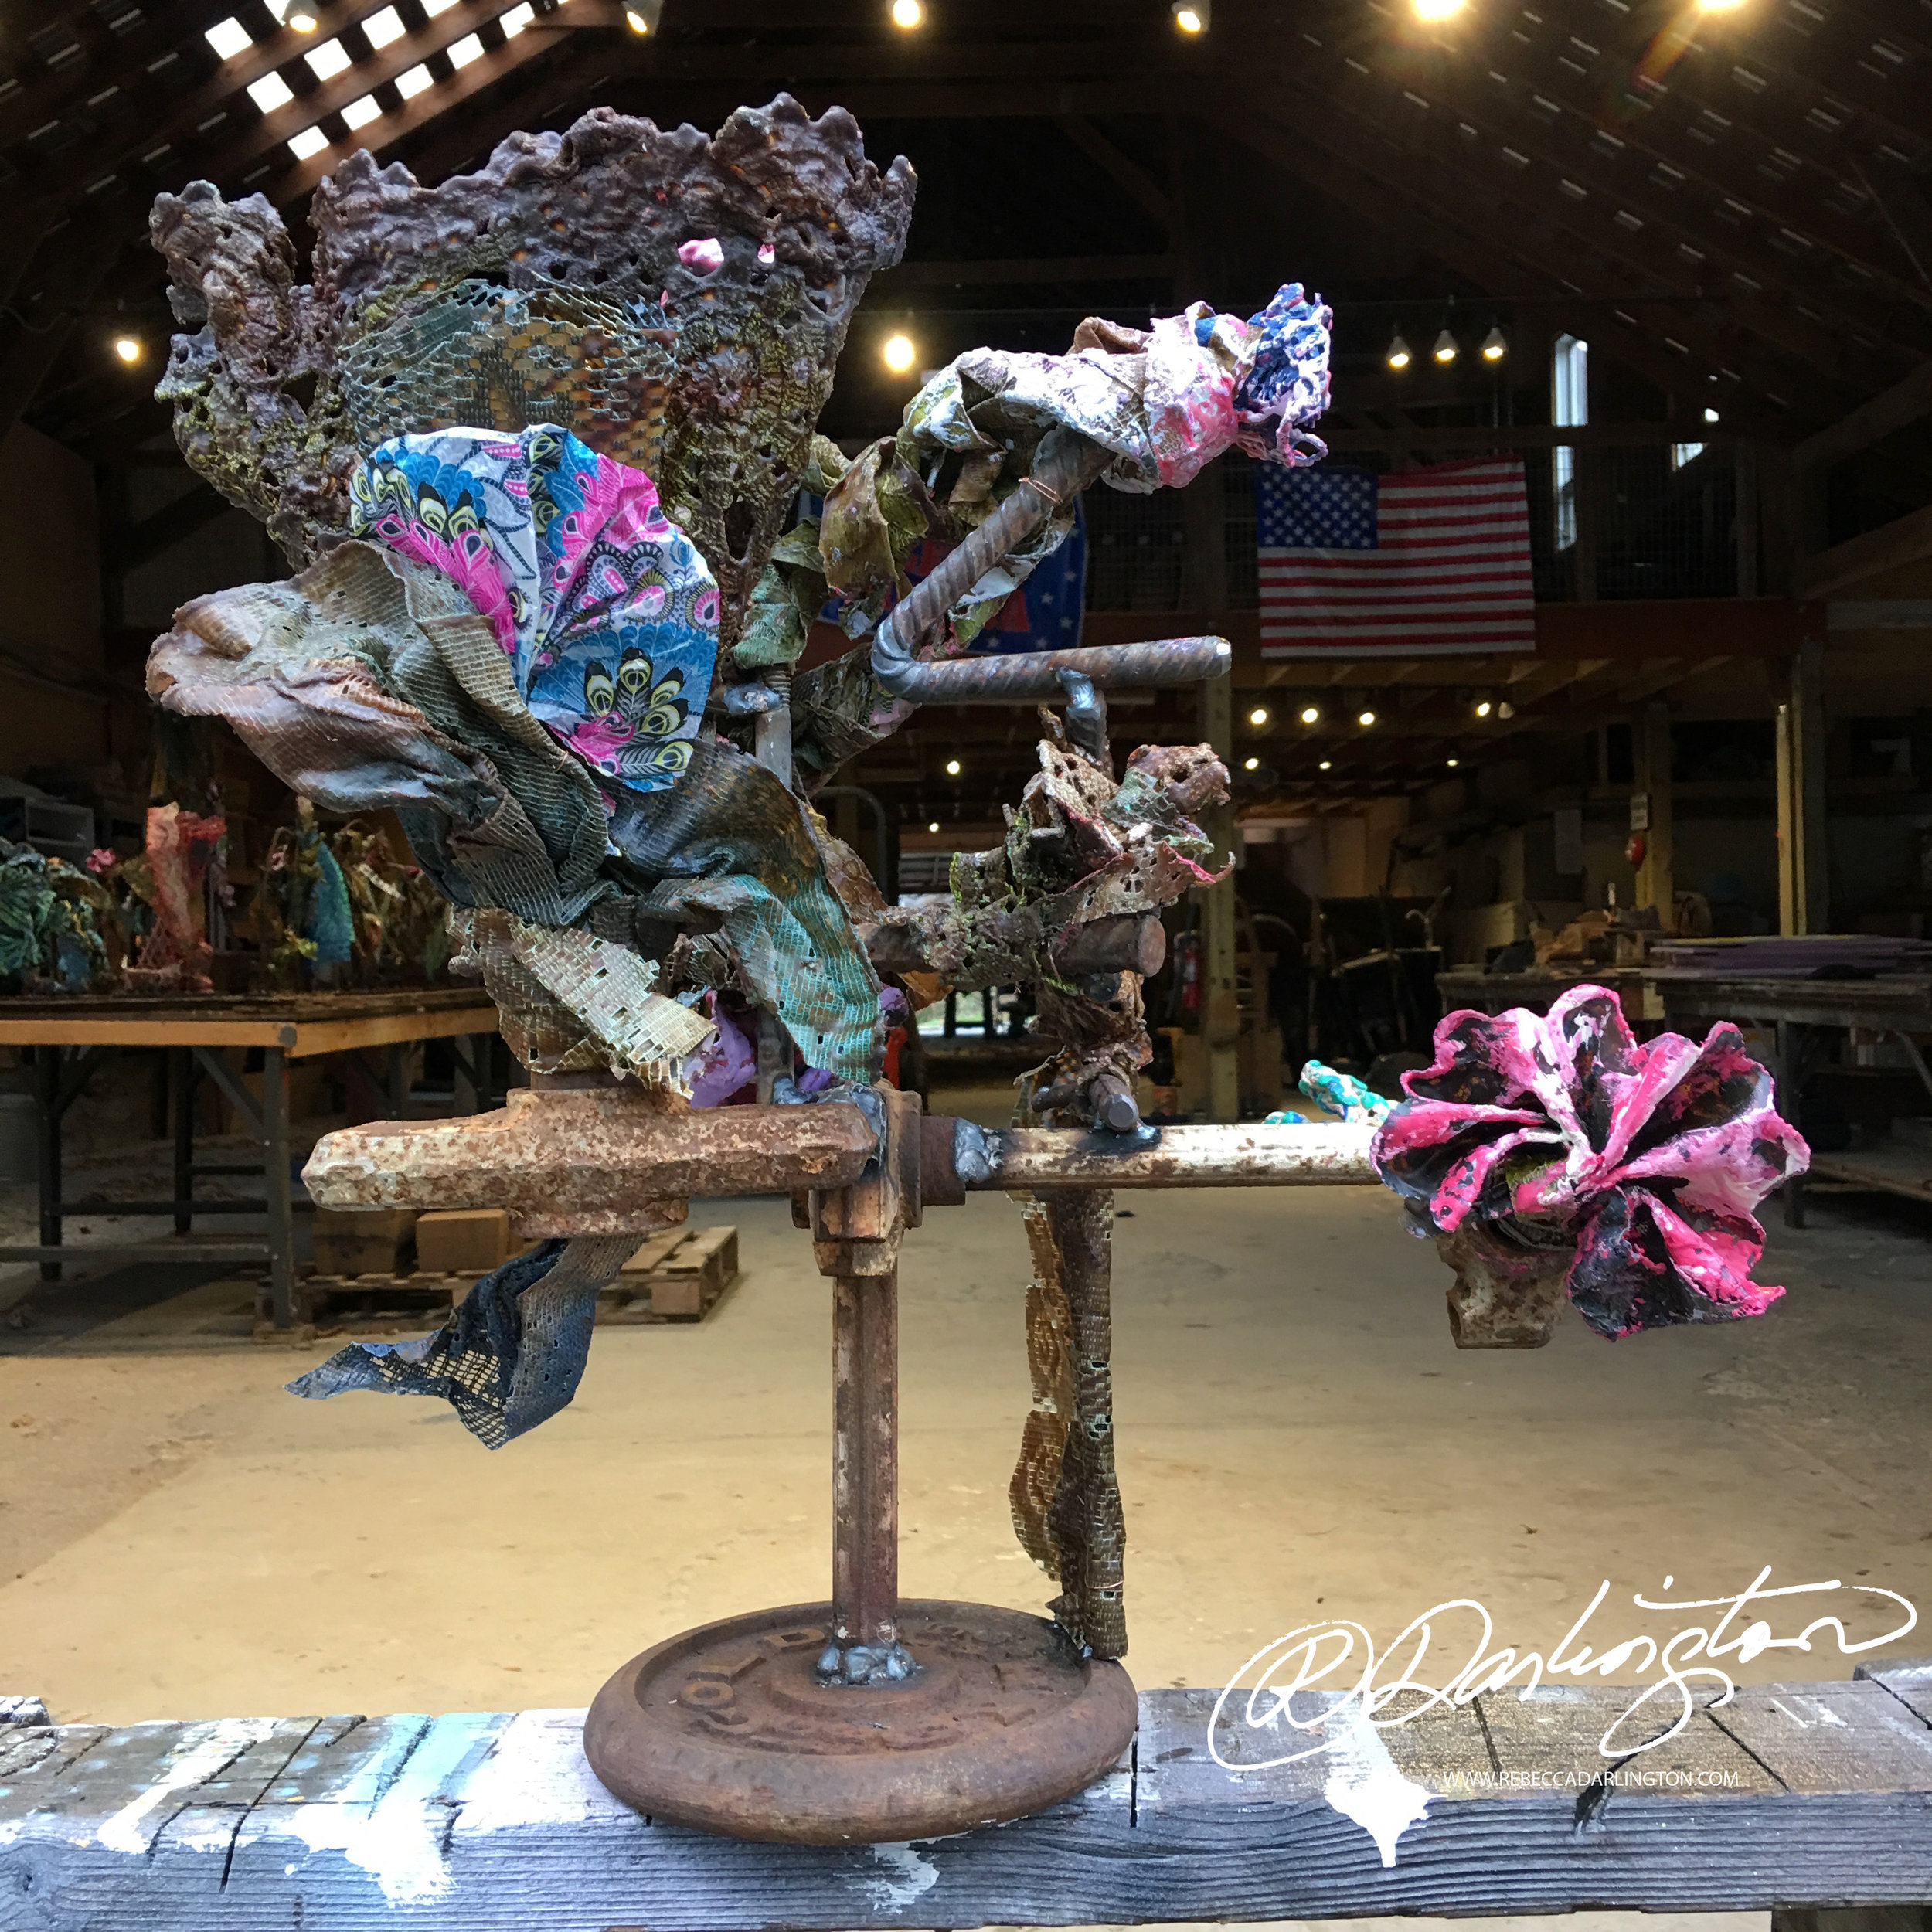 Darlington Artist in NYC displaying works using Encaustic, Lace, Resin, And Steel